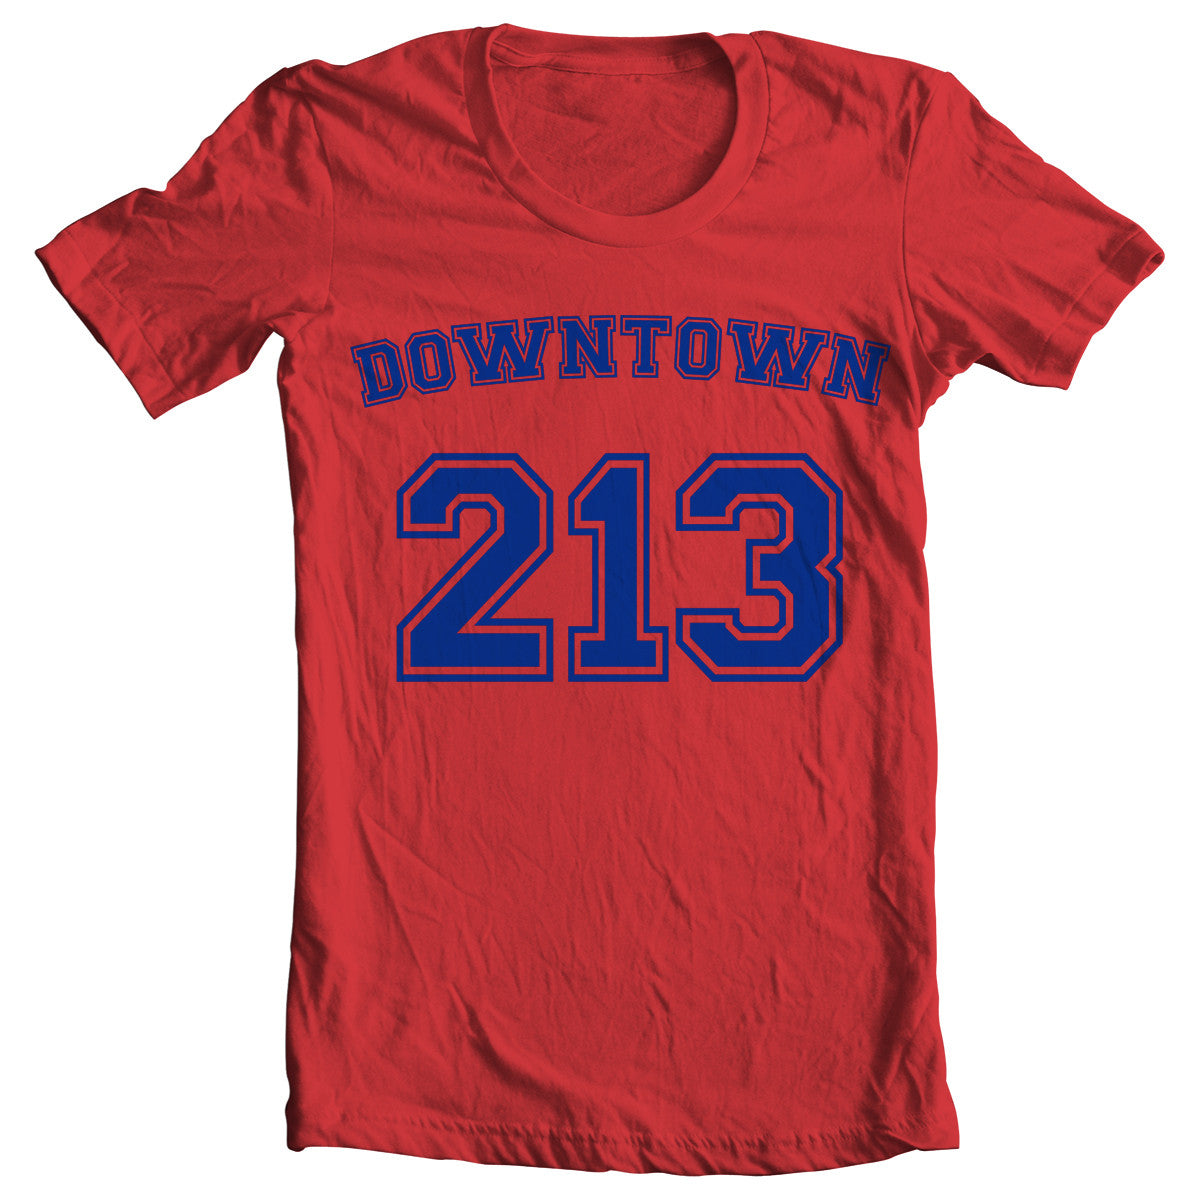 Downtown 213 Jersey